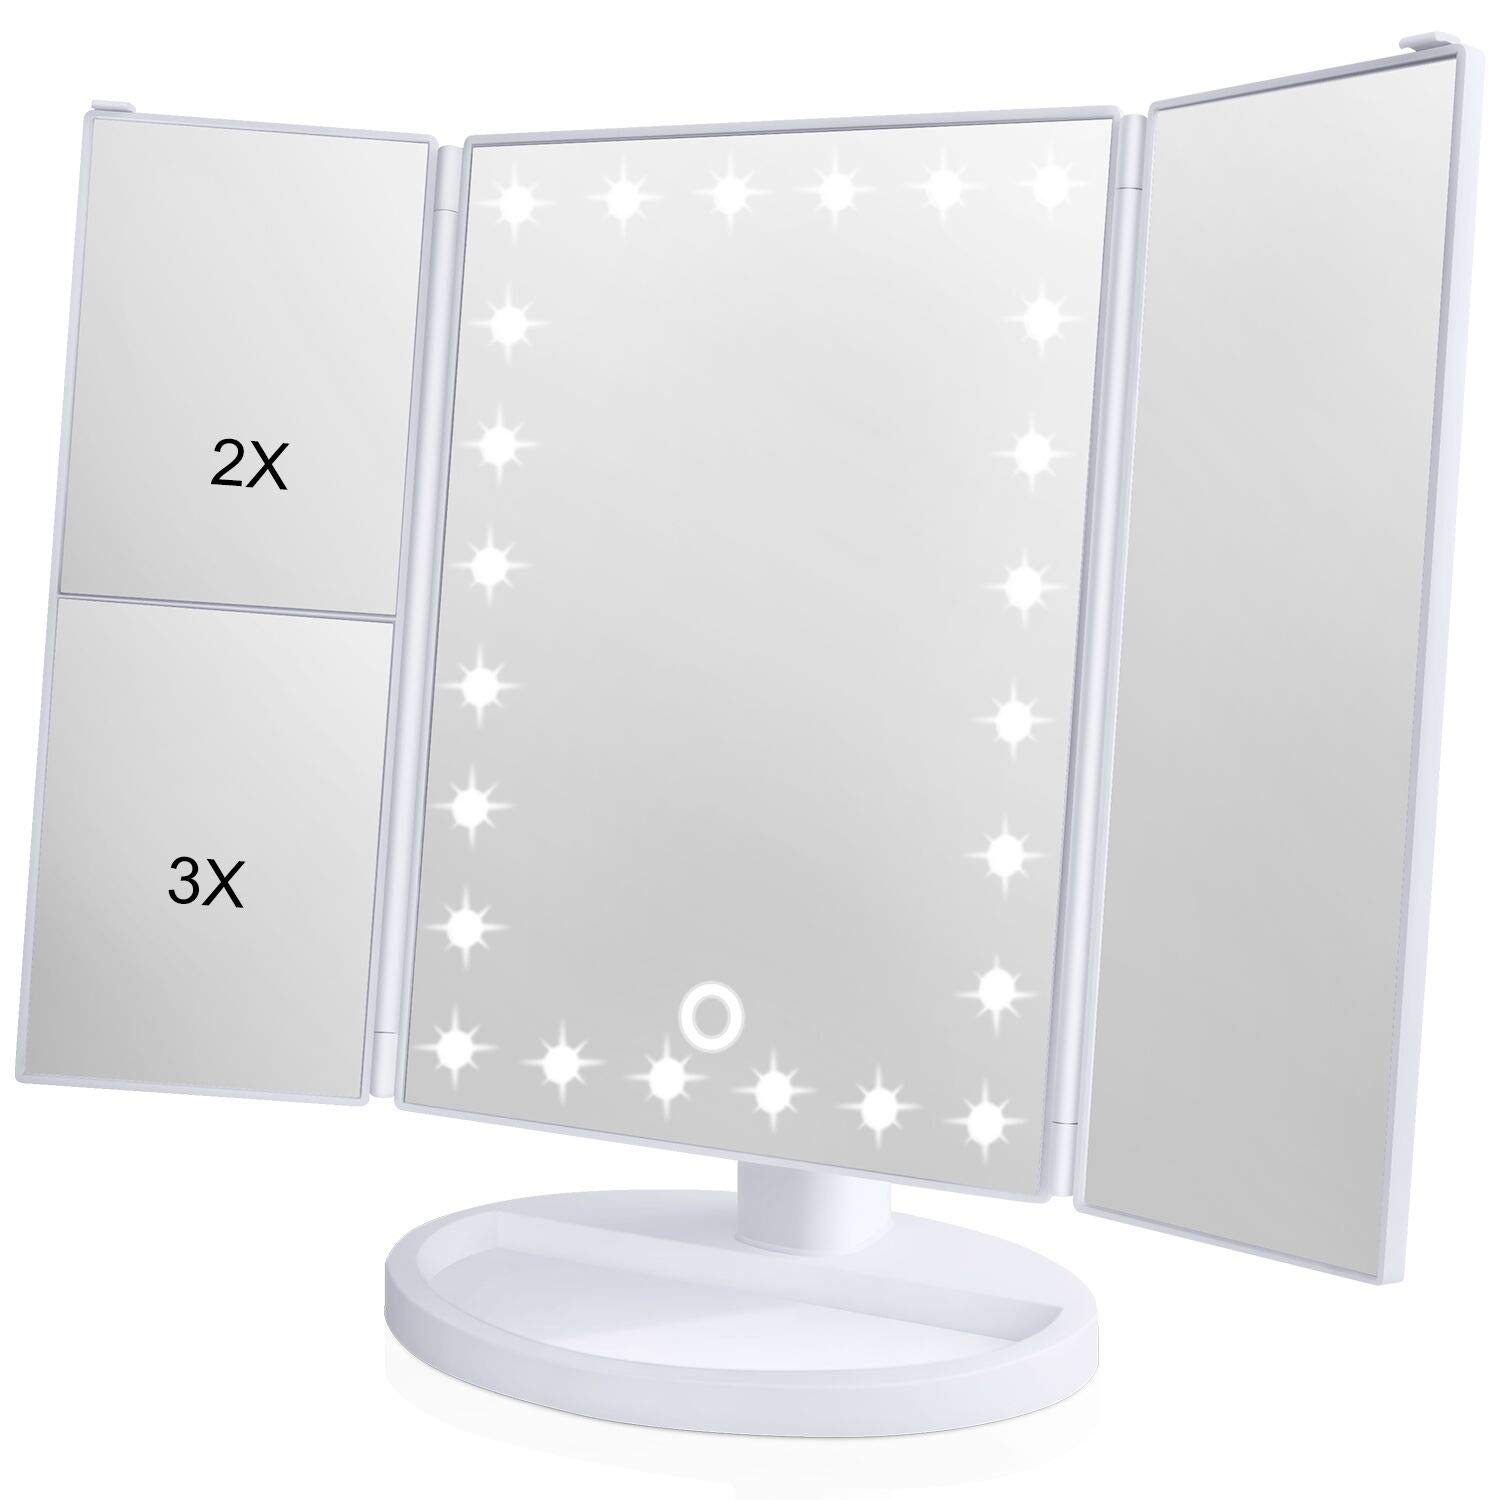 [2018 Upgraded Version] Lighted Makeup Mirror, Wondruz 24 Led Lights Vanity Mirror with Lights and Magnification (2x/3x), Touch Screen, 180° Rotation,Dual Power Supply, Trifold Mirror (White)